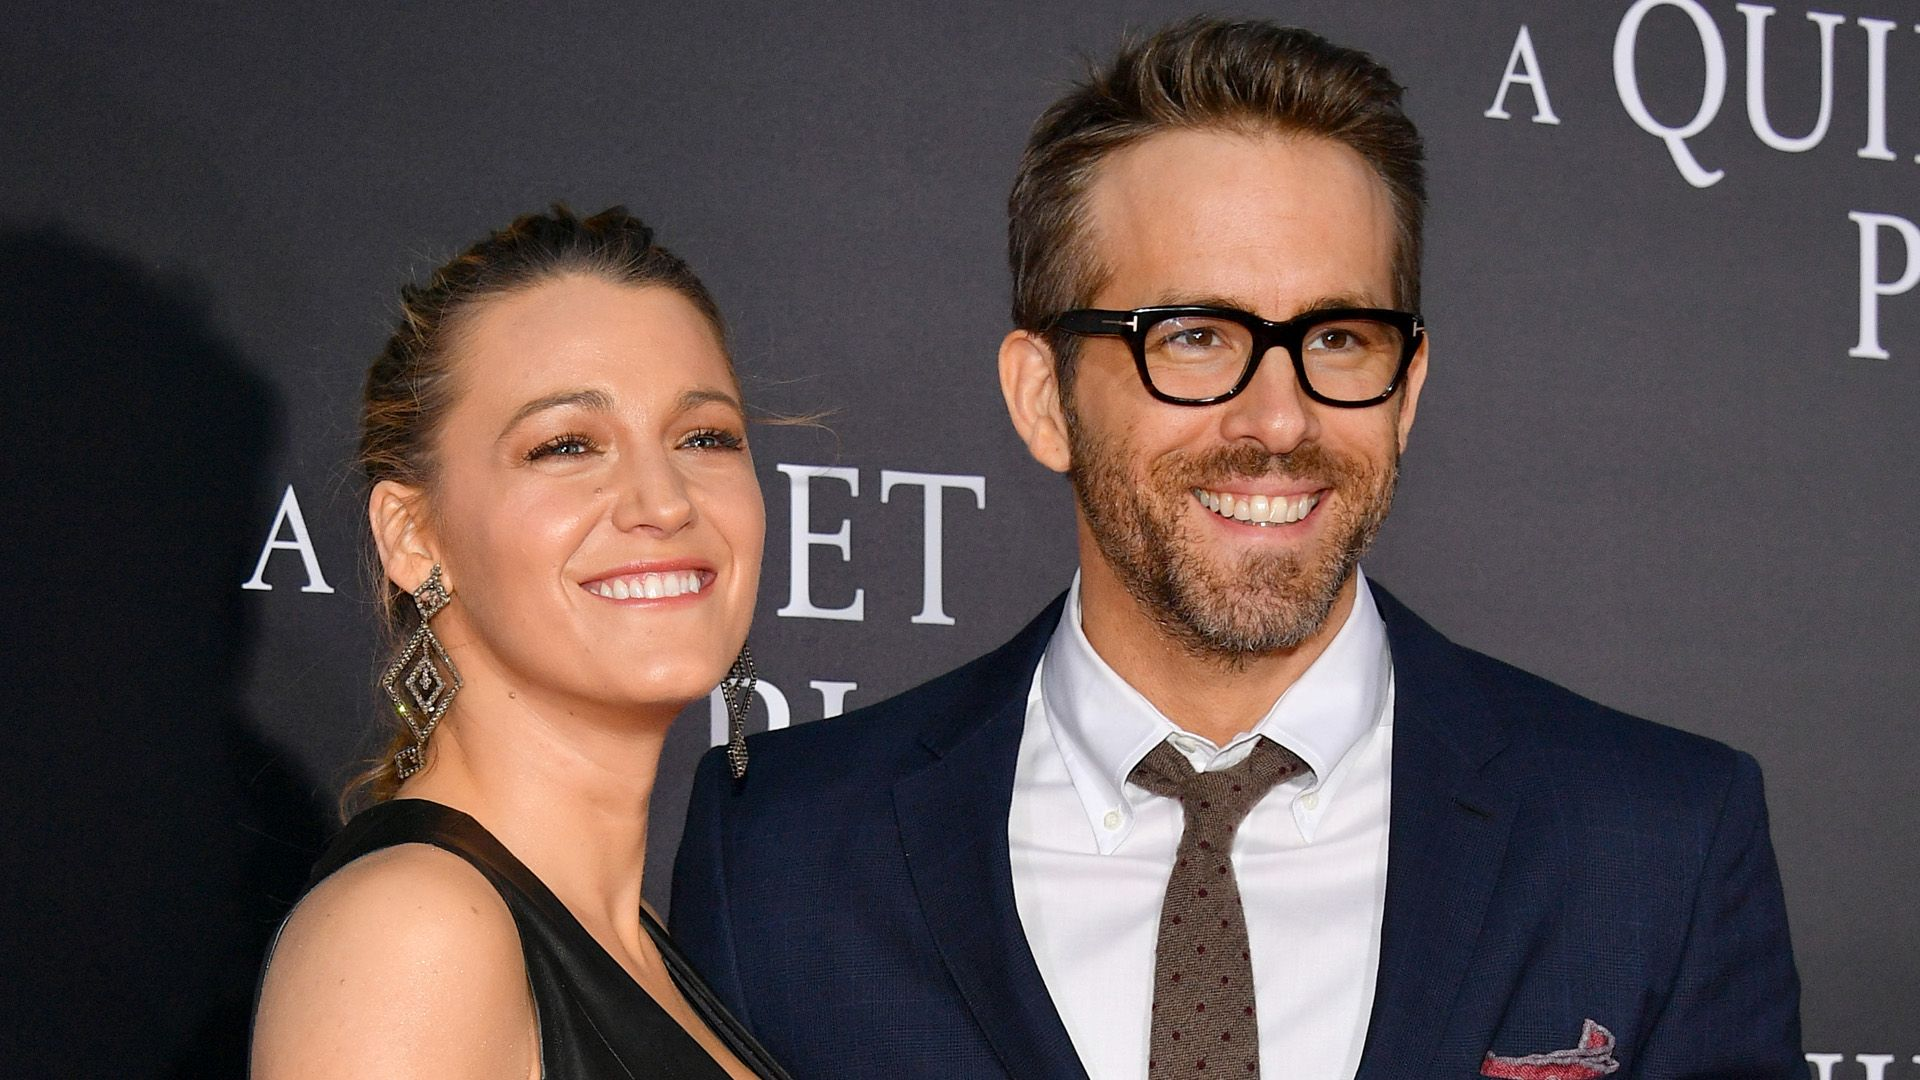 Ryan Reynolds Shares the First Photo of His and Blake Lively's Third Baby Girl on Twitter